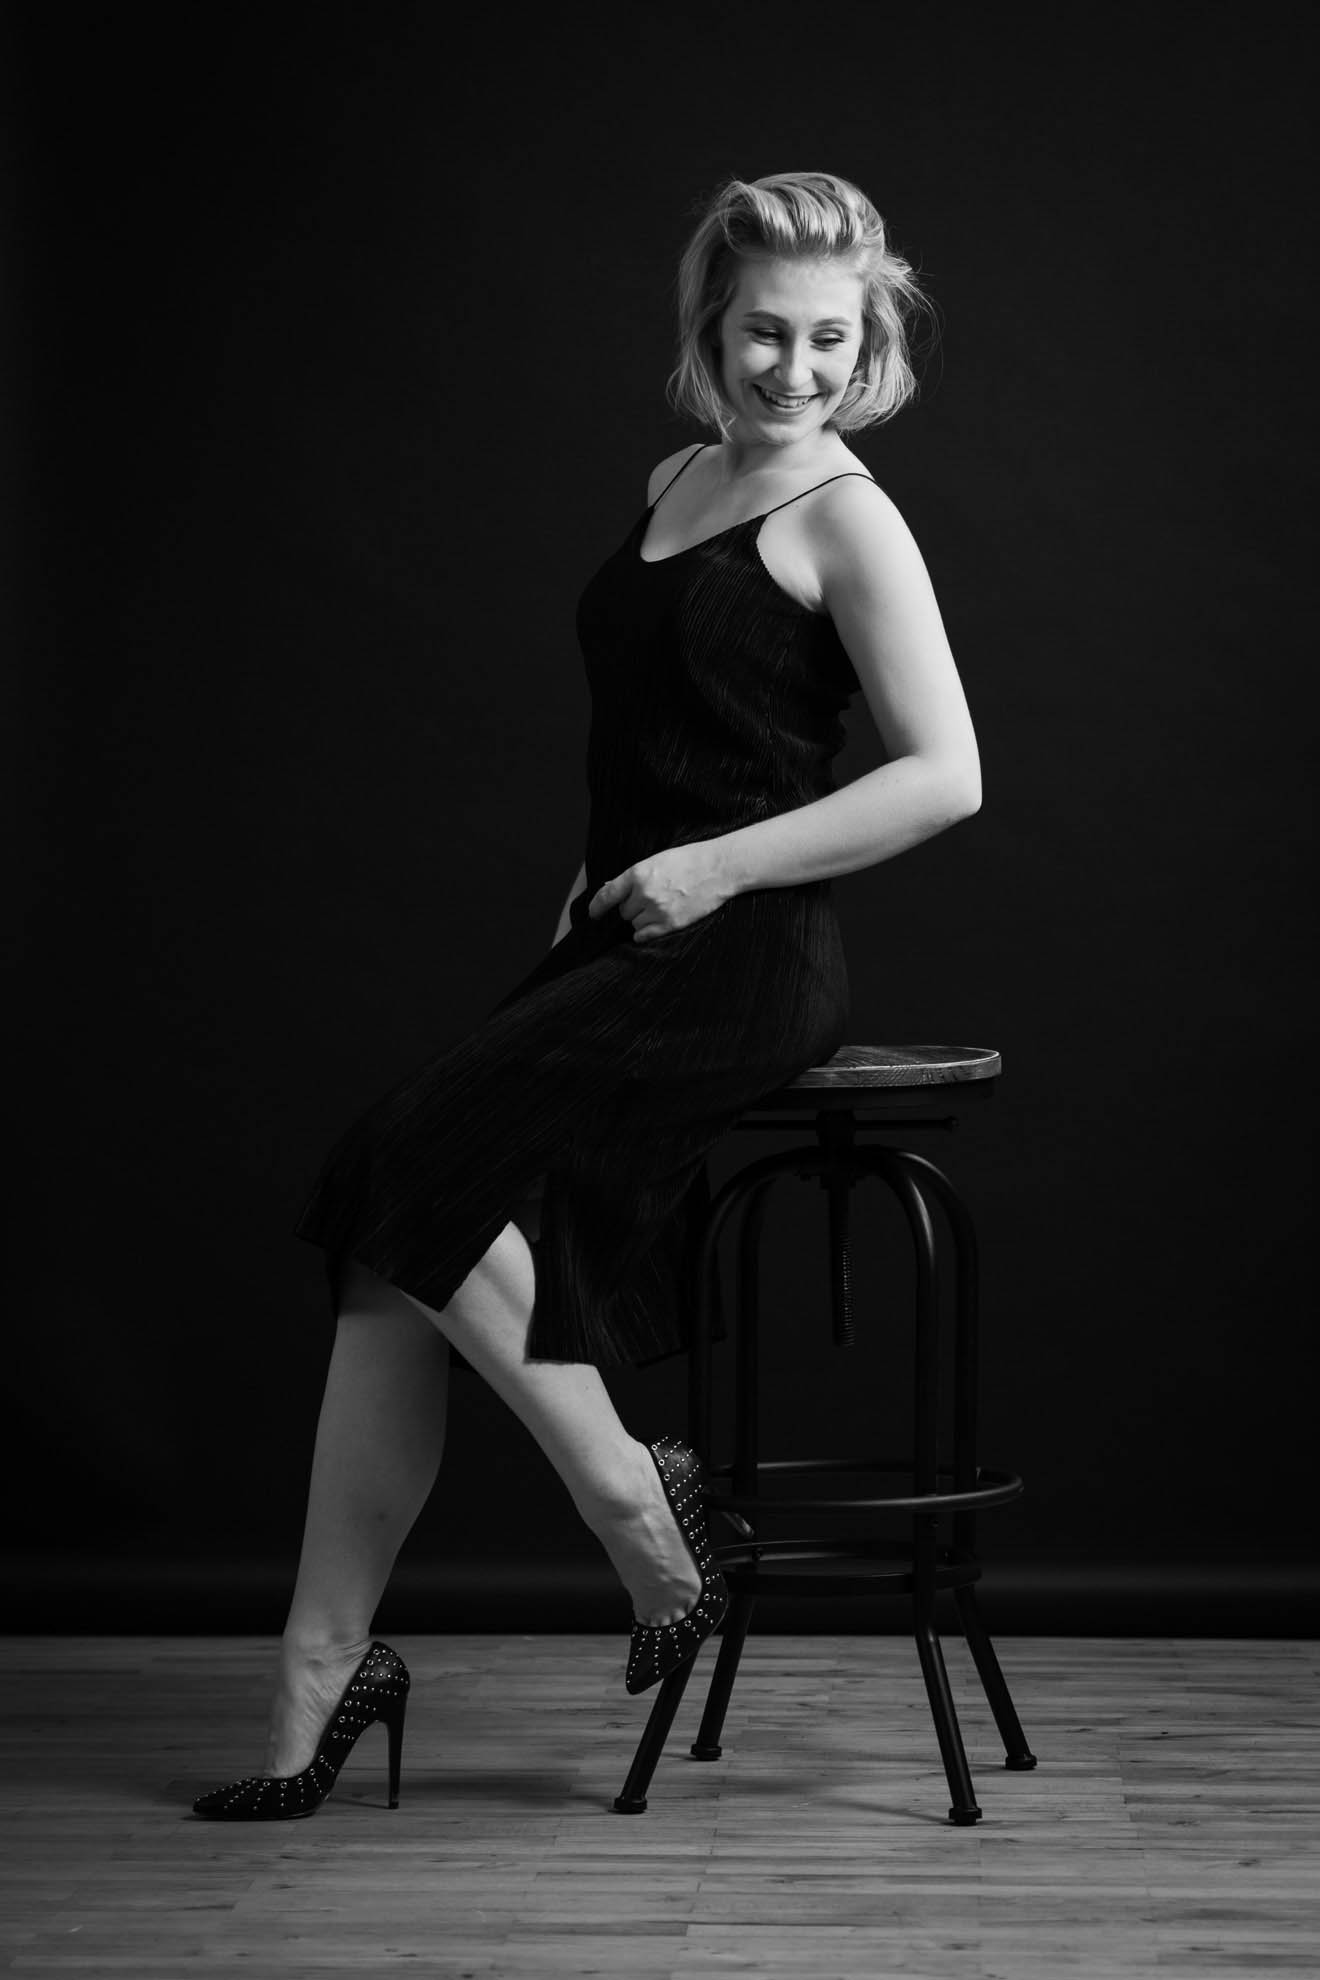 primetime chaos black and white photography harry voglhuber dress chair